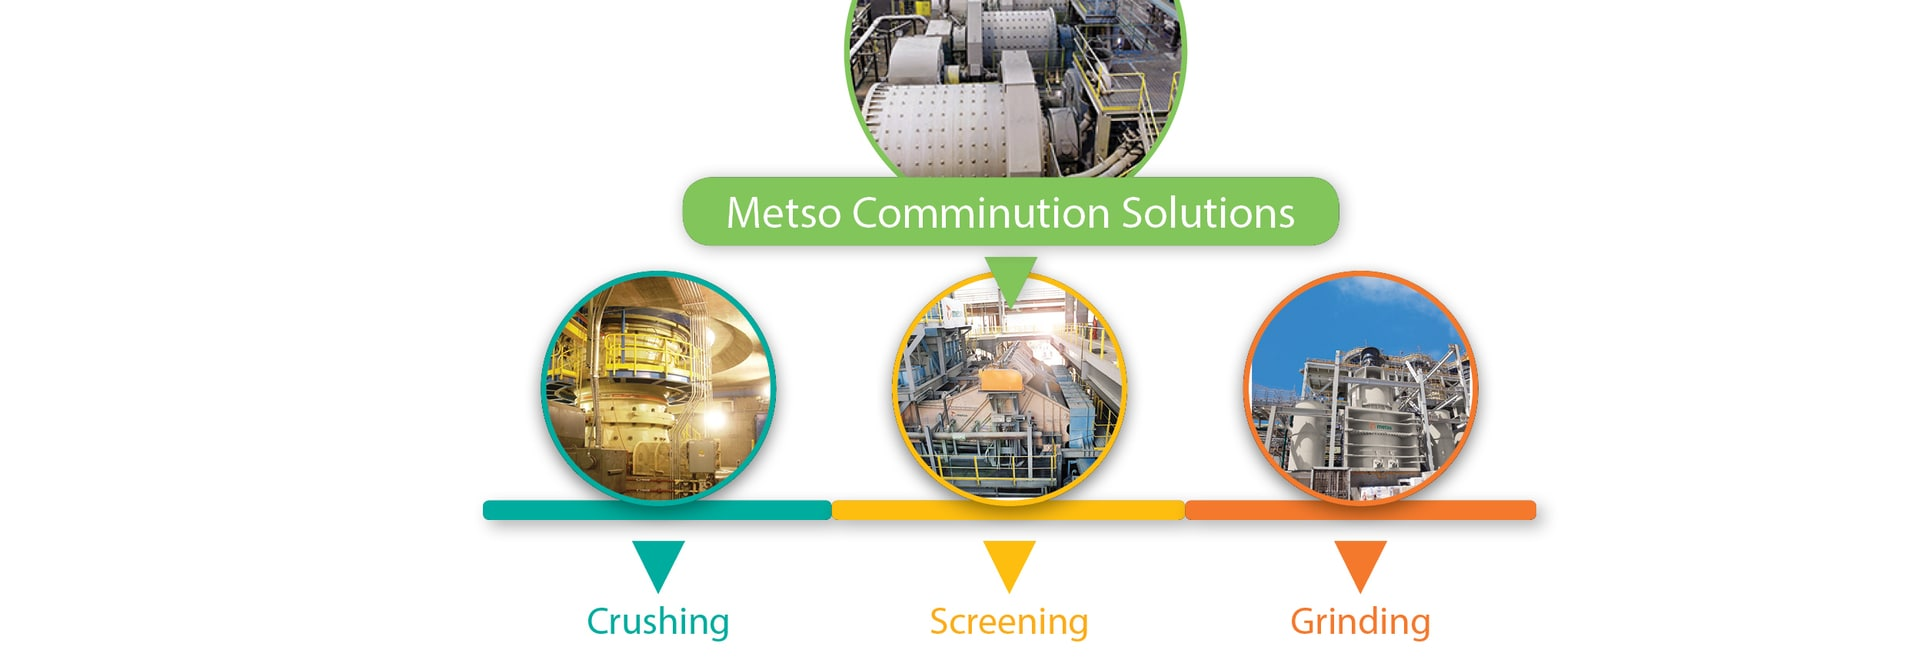 Metso, in collaboration with Rockwell Automation, introduces